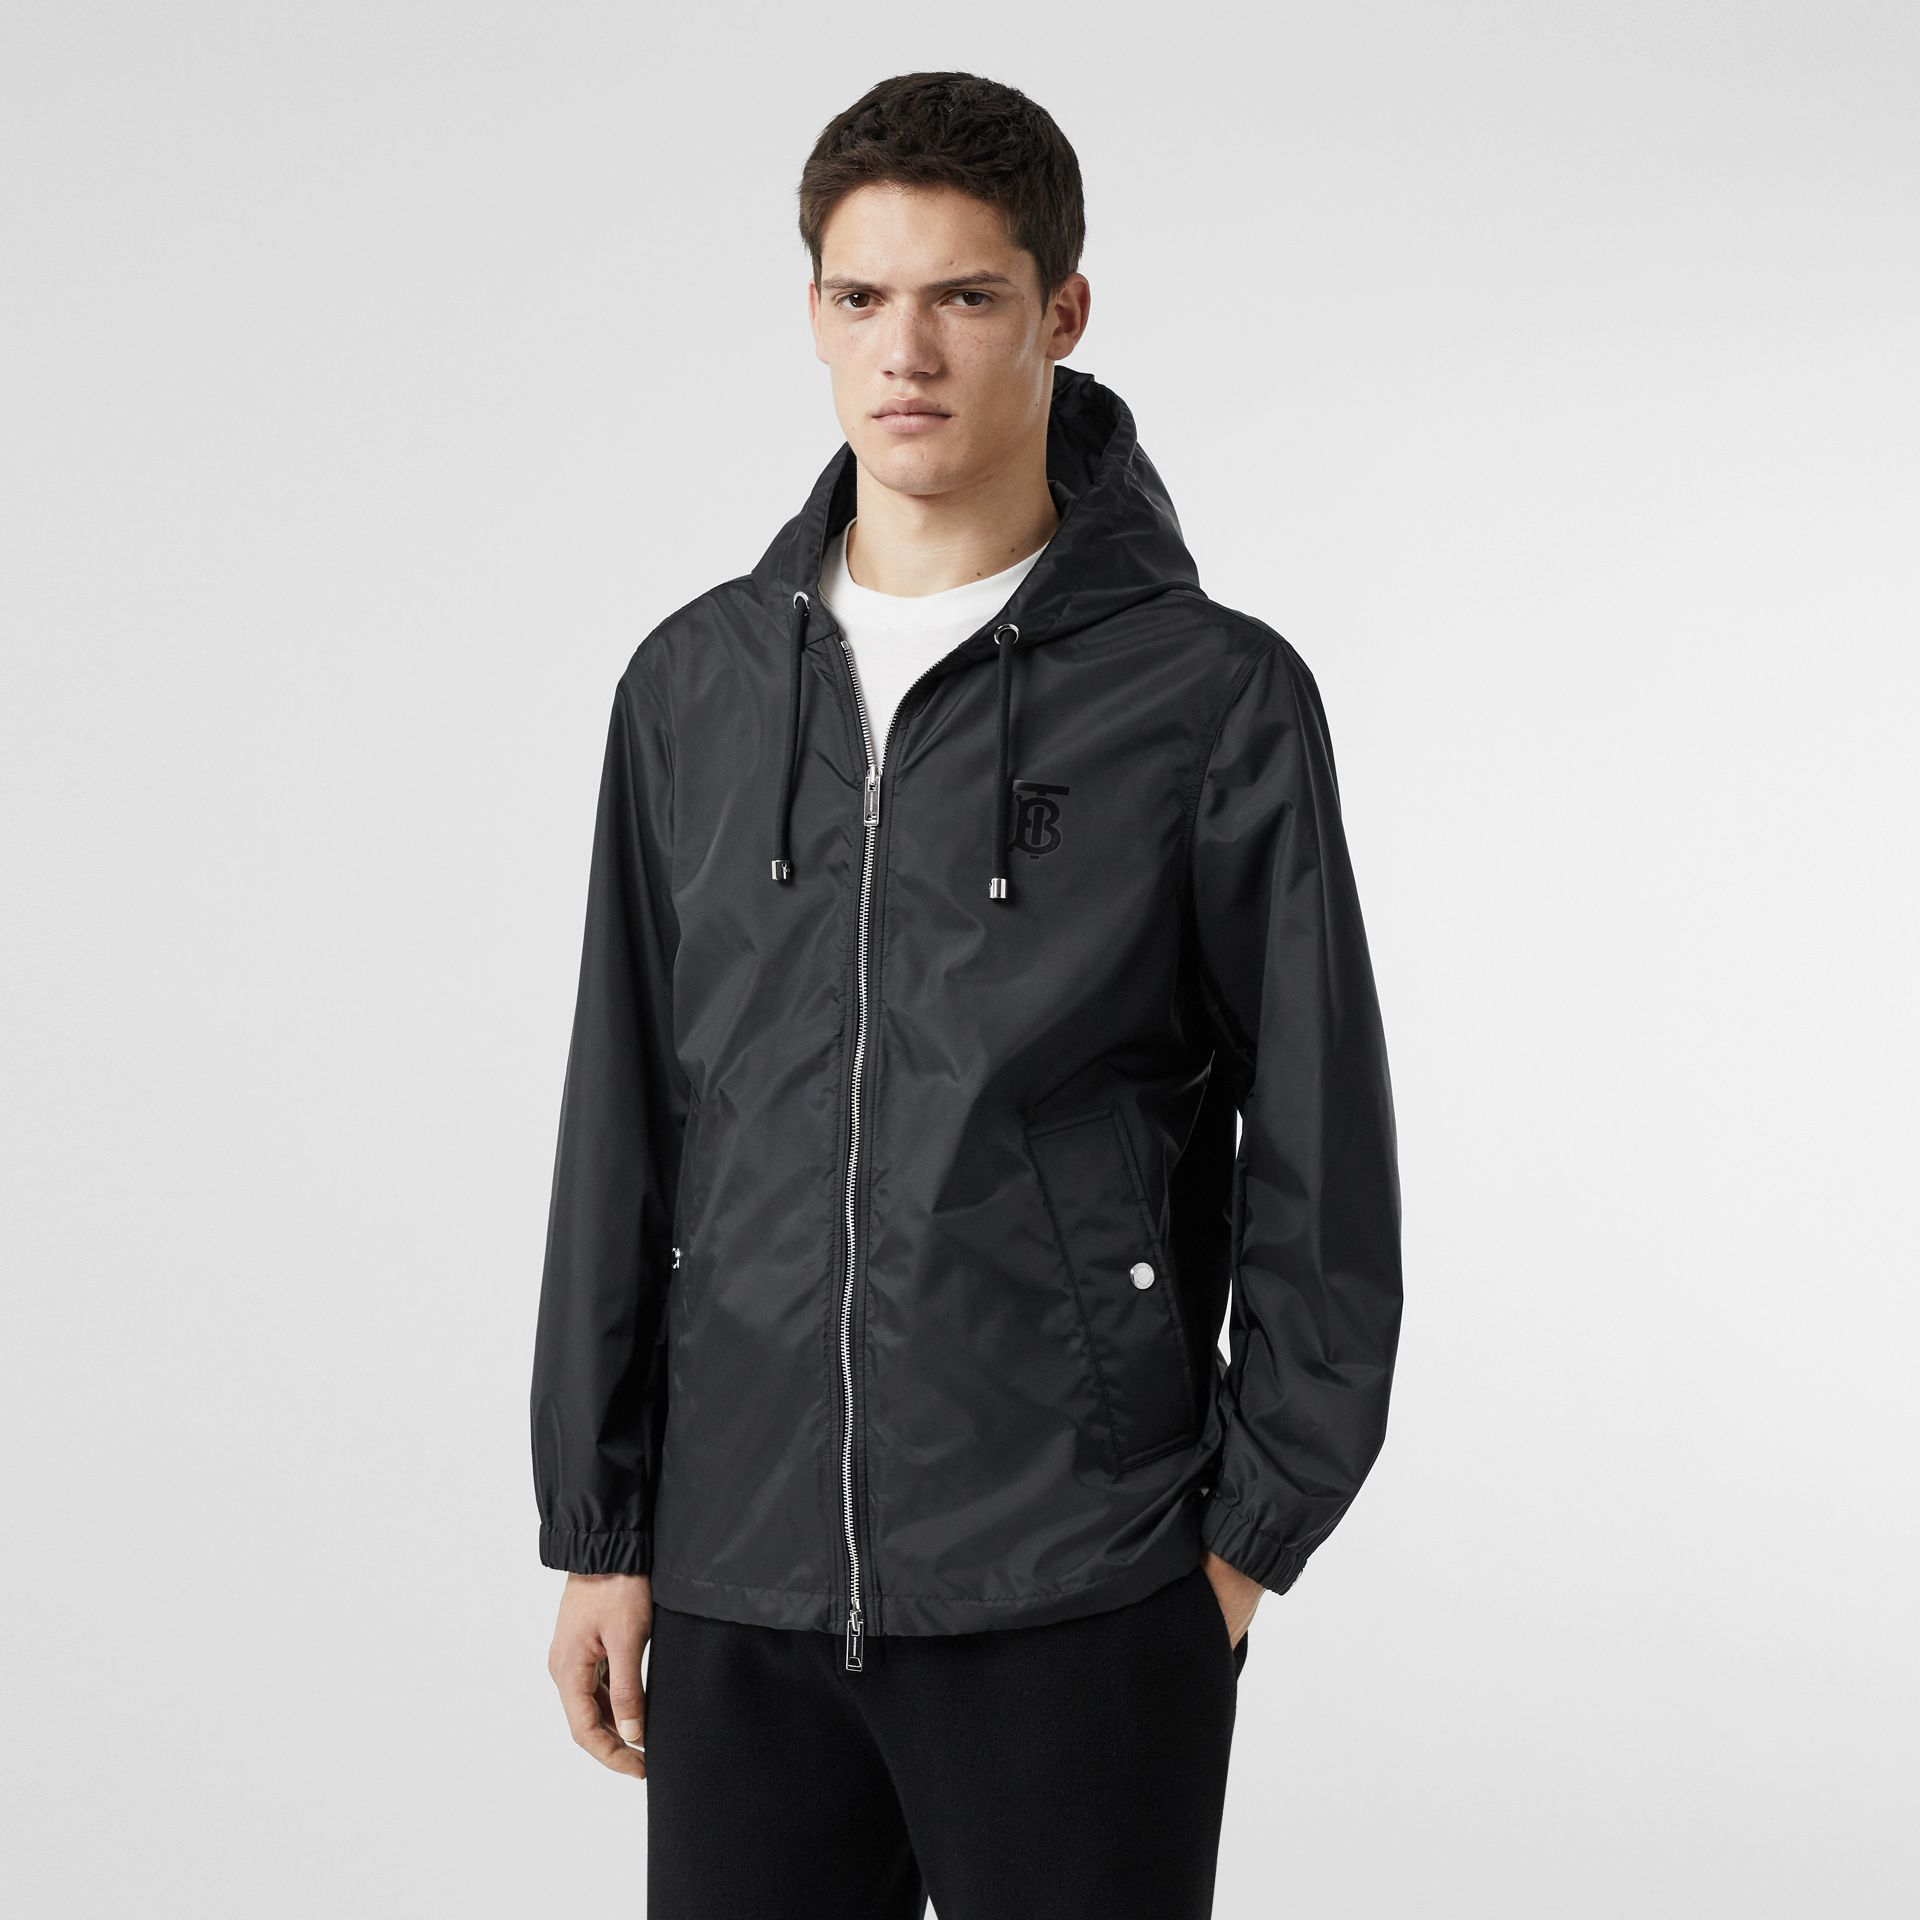 Monogram Motif Lightweight Hooded Jacket in Black - Men | Burberry - gallery image 5